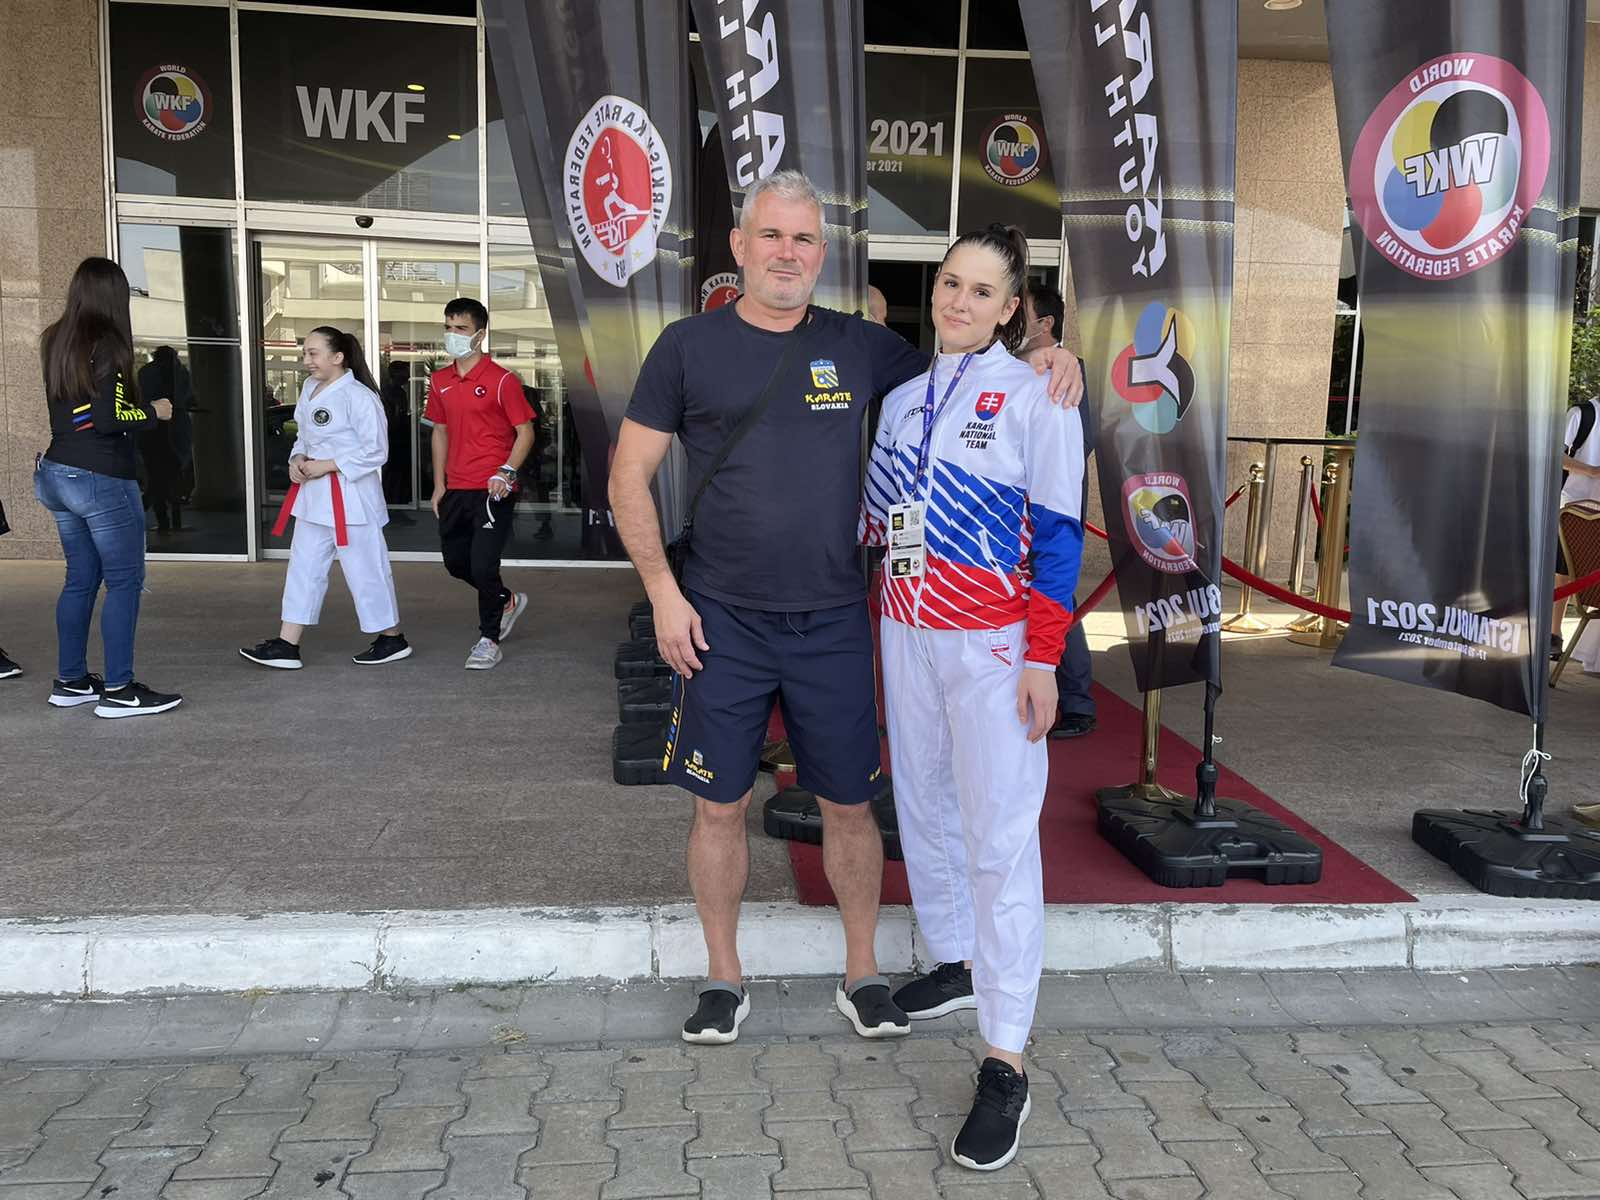 KARATE1 YOUTH LEAGUE - ISTANBUL 2021